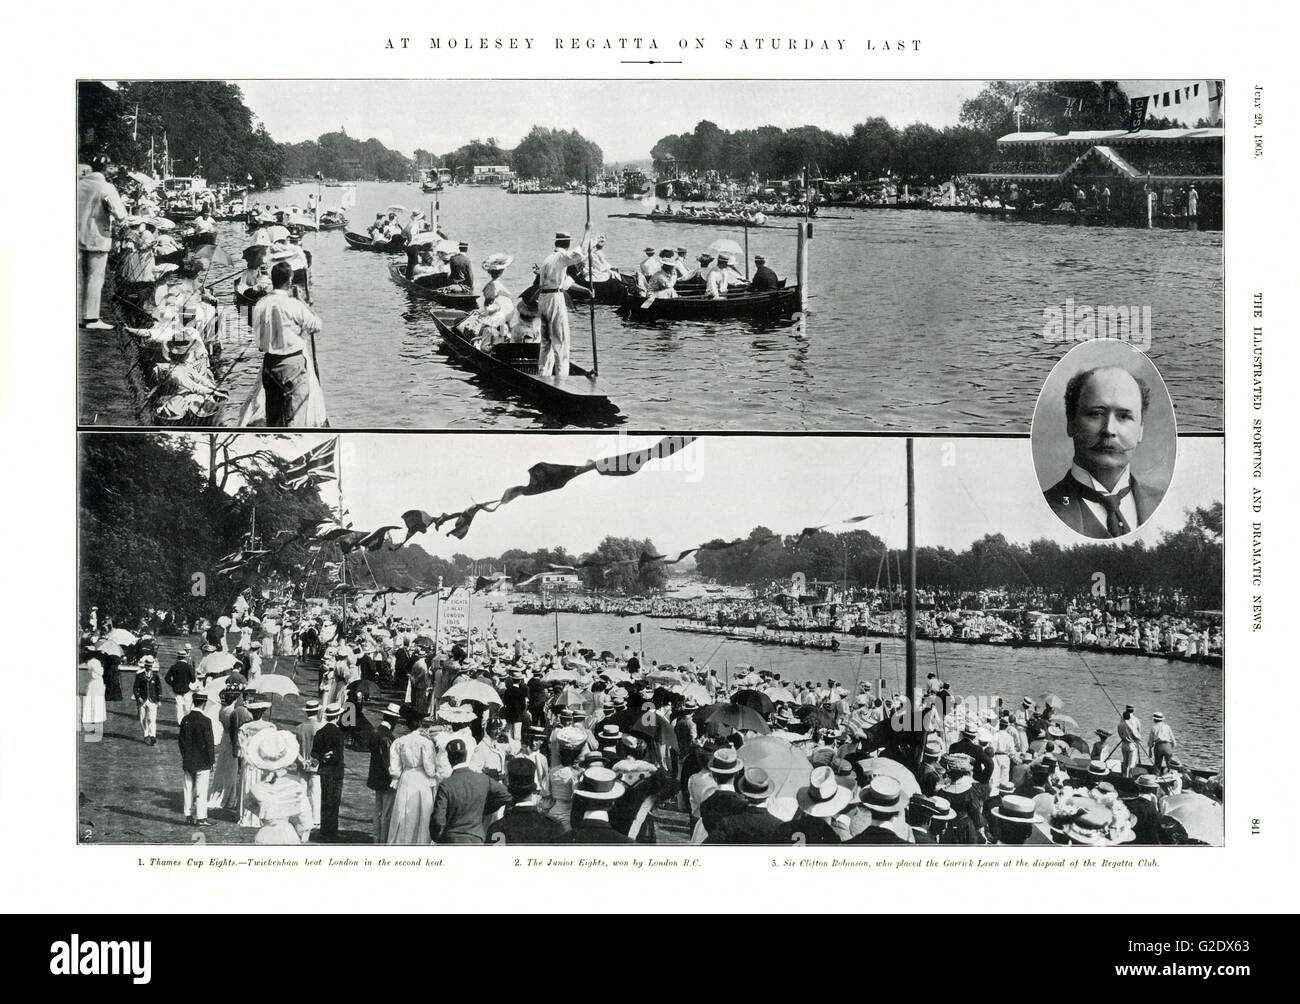 Molesey Regatta, 1905 magazine spread of the rowing races on the River Thames for the cream of Edwrdaian Society. Stock Photo